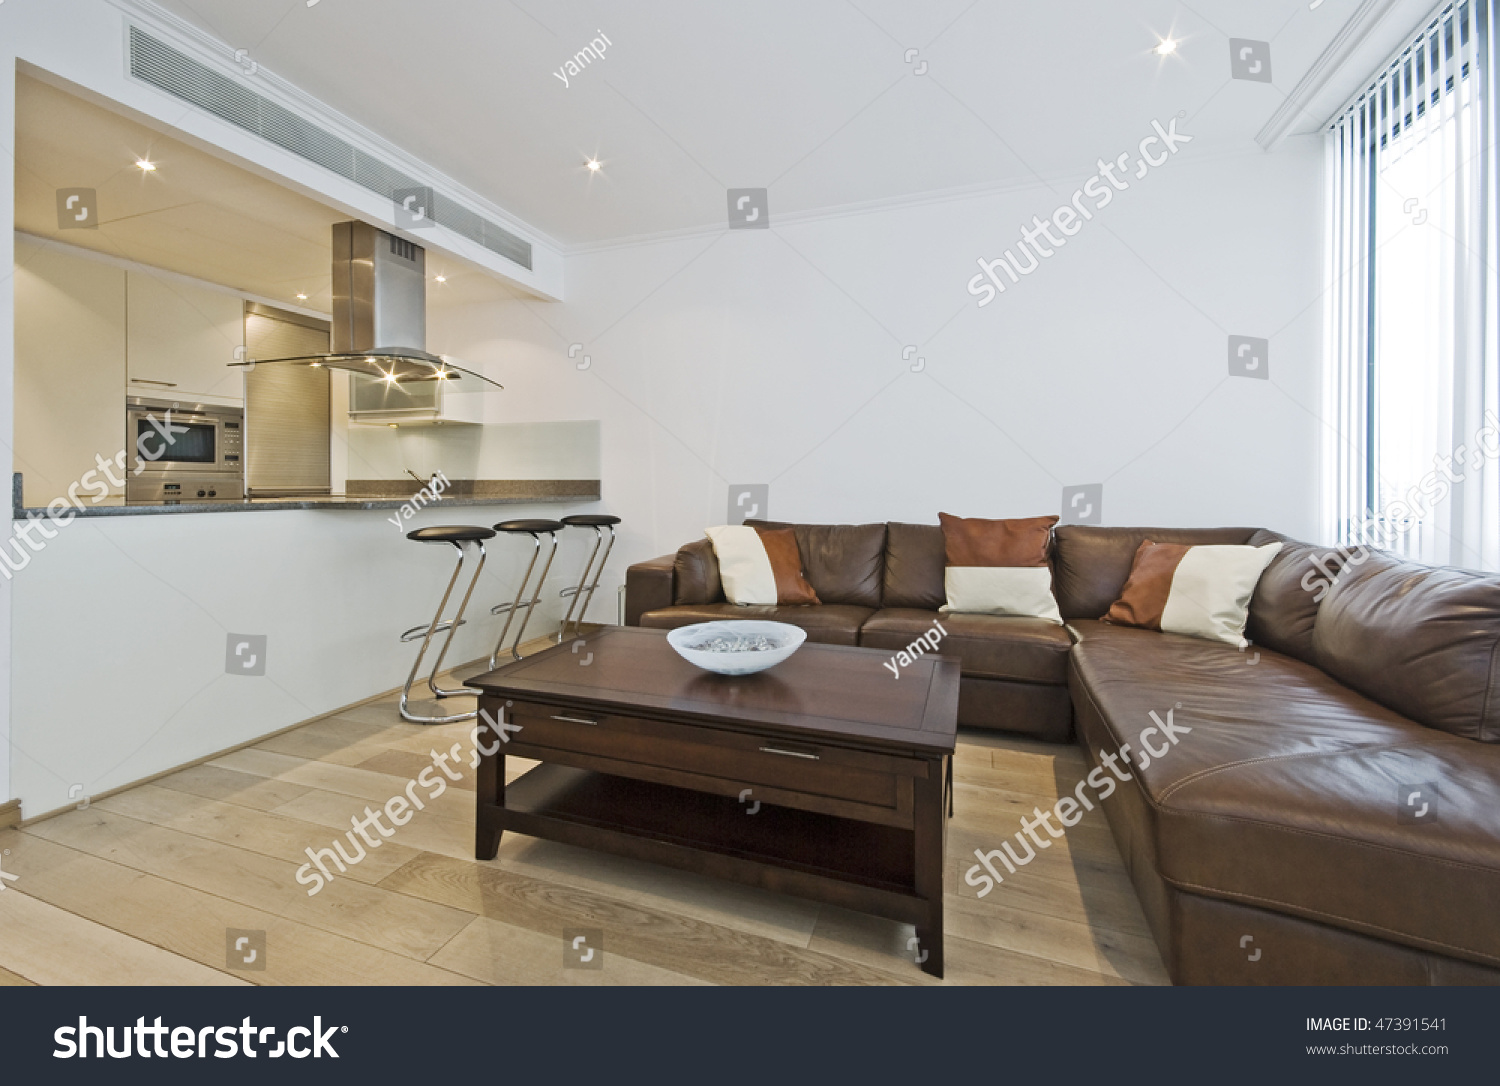 Modern Luxury Open Plan Living Room Stock Photo (Royalty Free ...